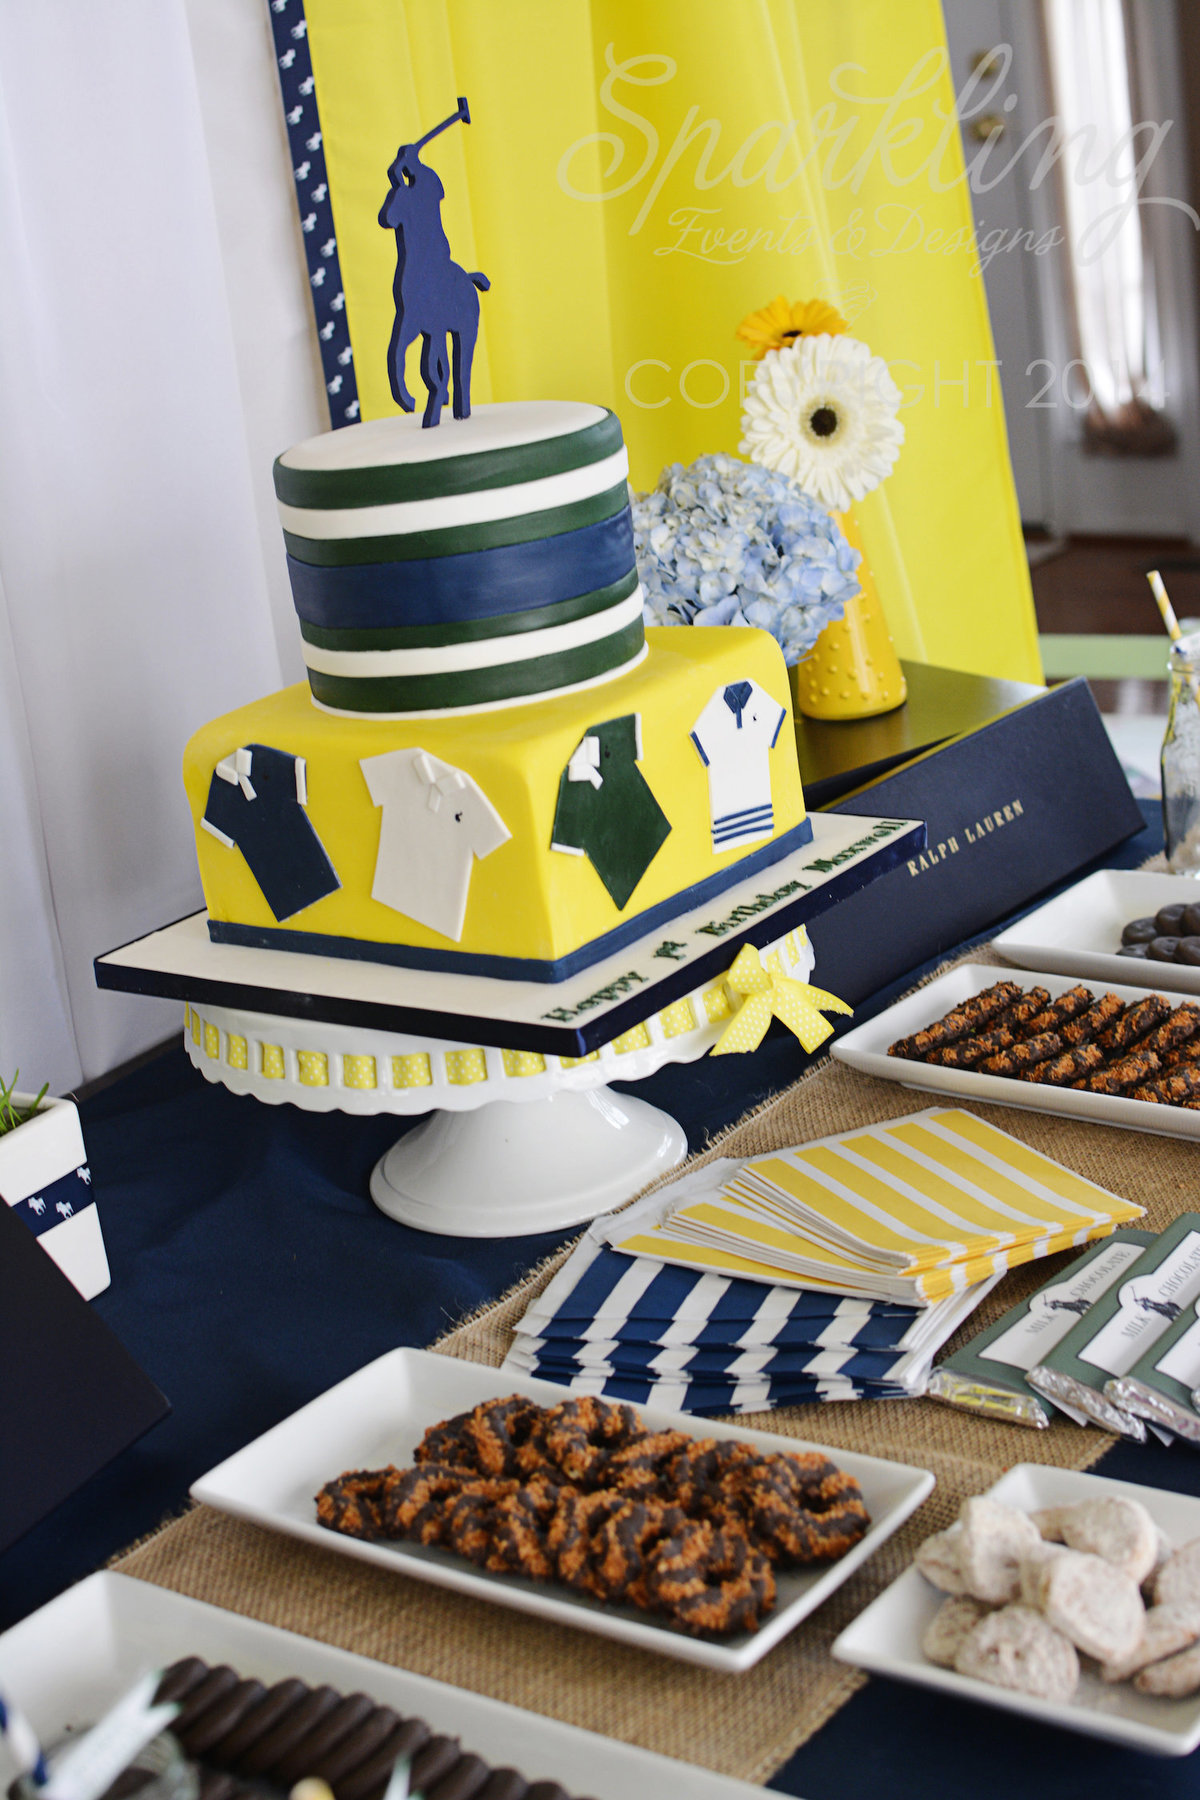 Sparkling Events Designs - Polo Party Dessert Table 2